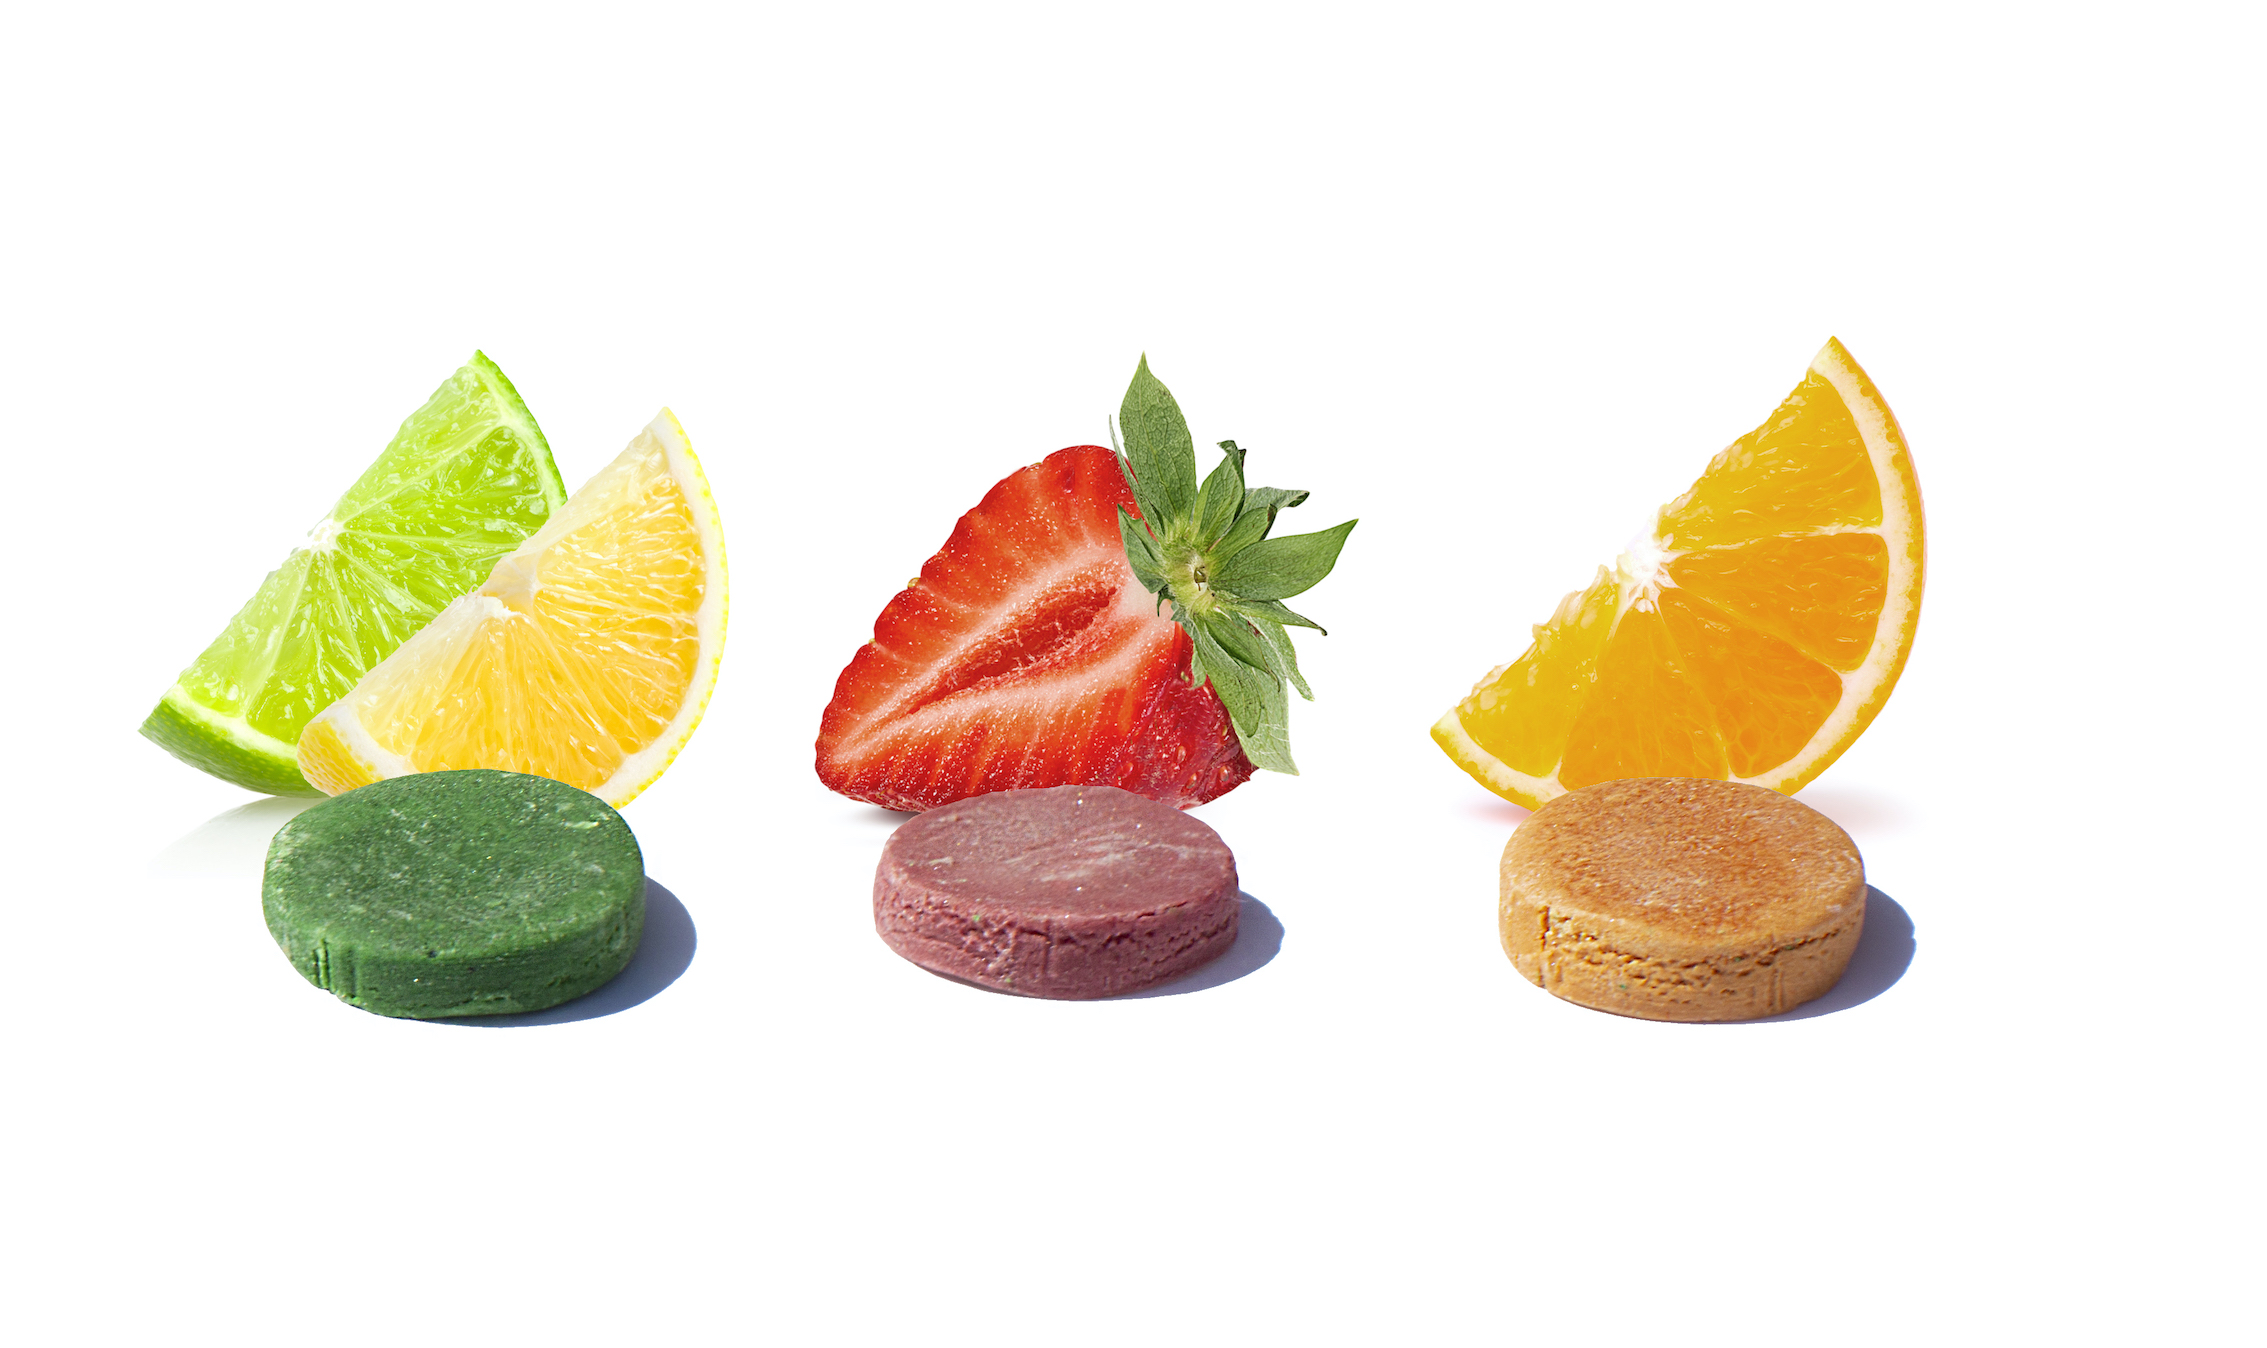 A new healthy hard candy FAVES, in the flavors lemon lime, orange, and strawberry.